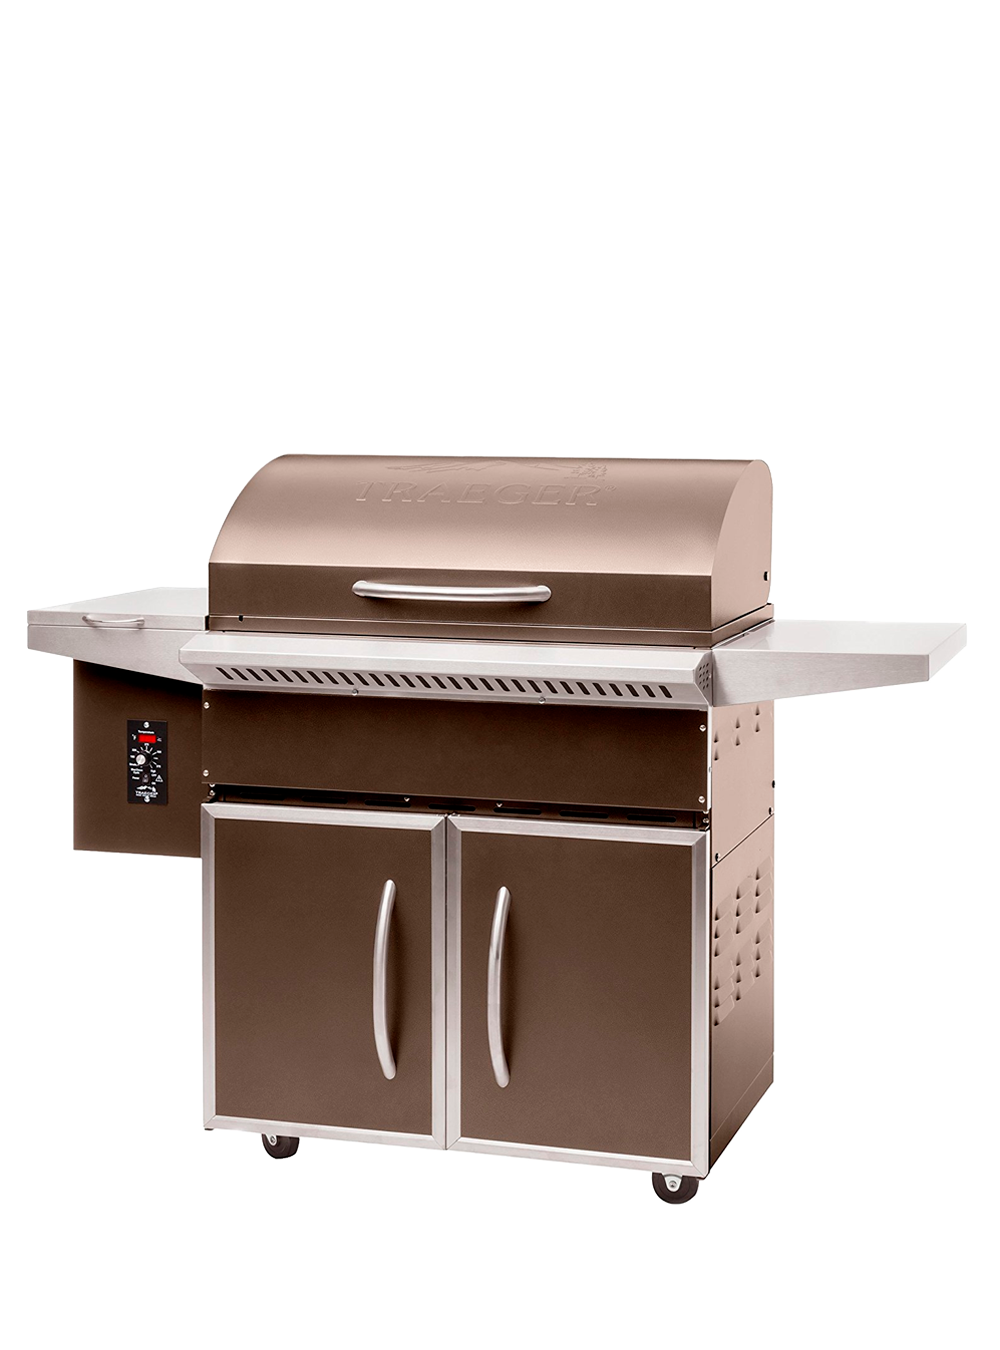 Best Pellet Smokers 2019 5 Best Pellet Grills to Buy in 2019   Top Picks for Wood Pellet Grills